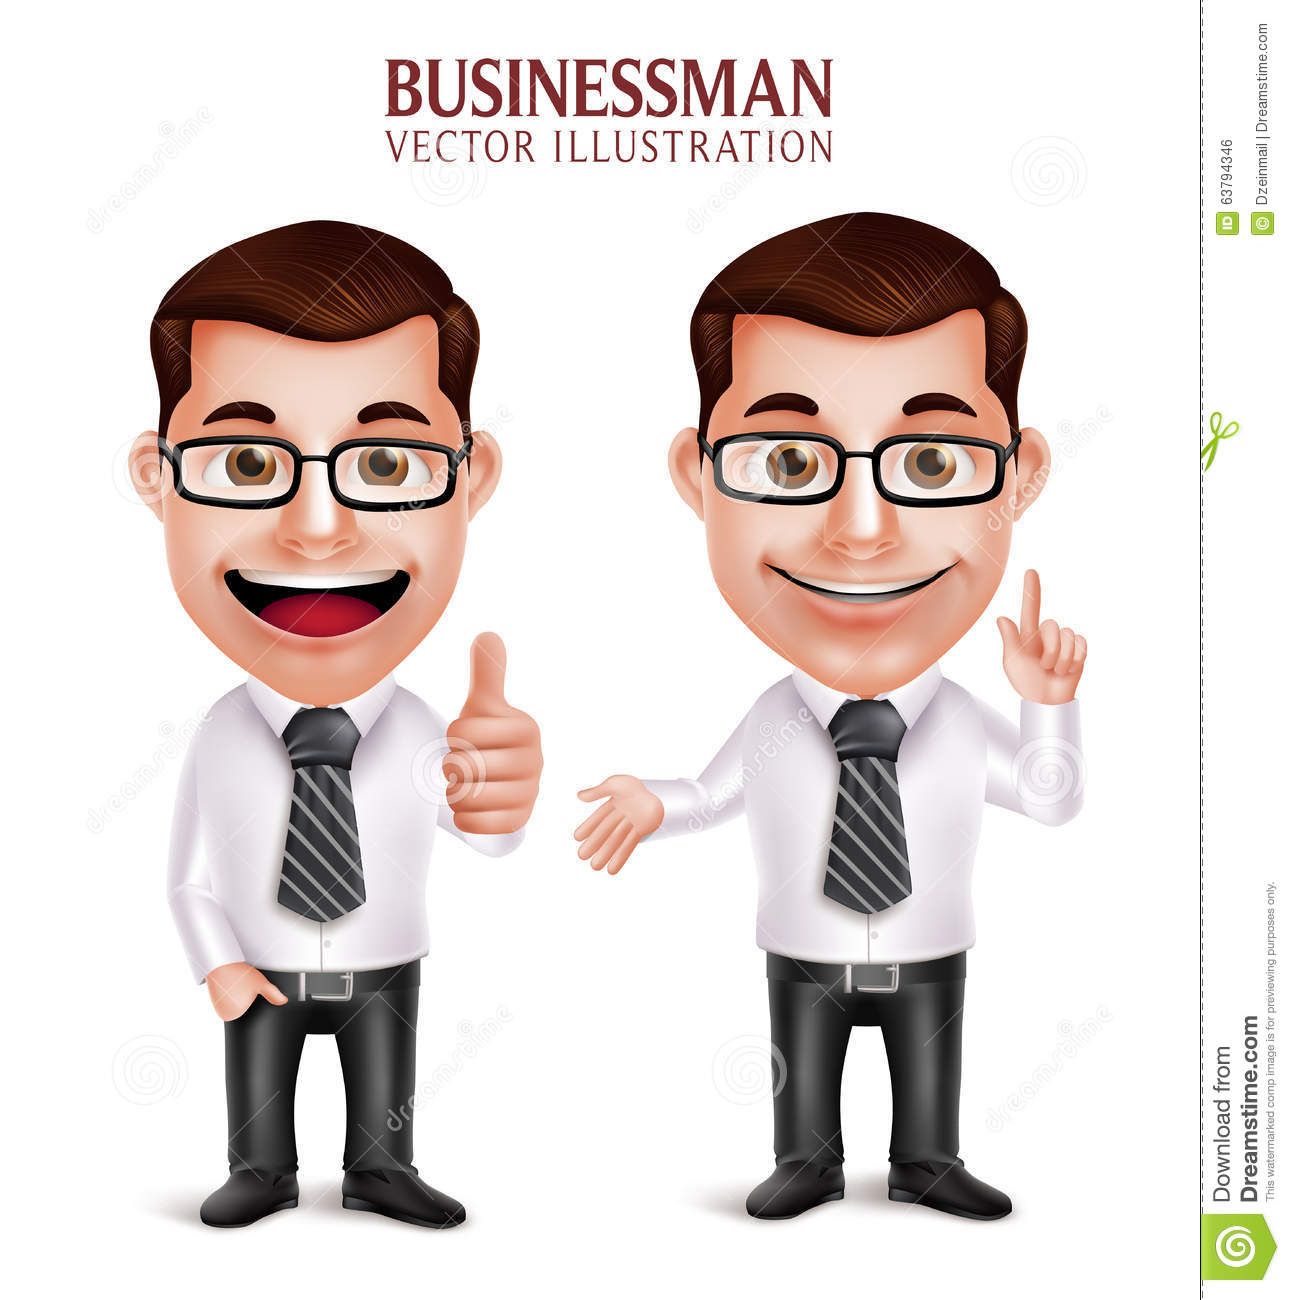 Character clipart business man. Hand gesture pointing pencil